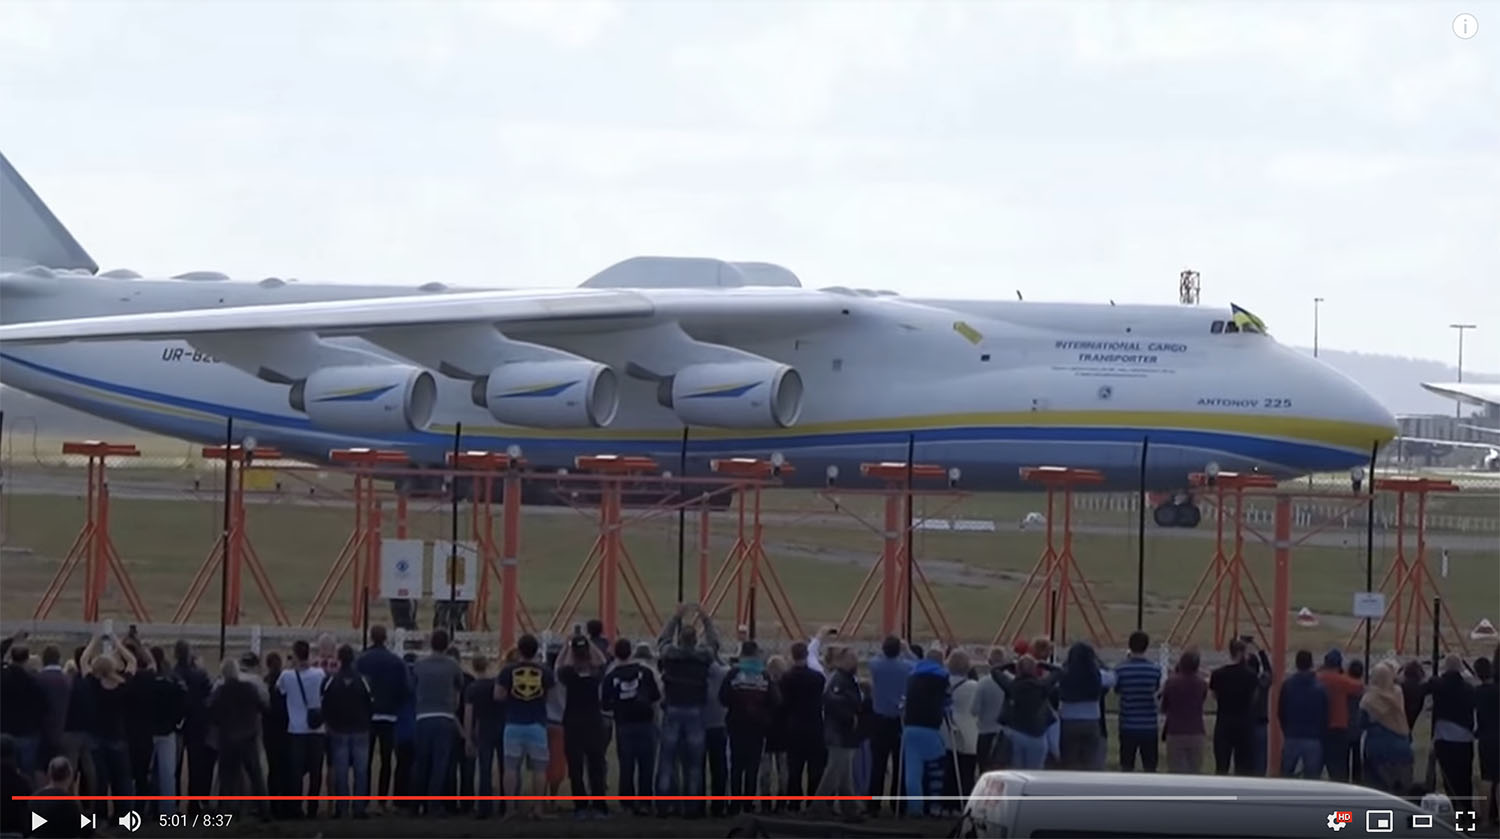 Going Direct: Swallowed Entirely By The World's Biggest Plane